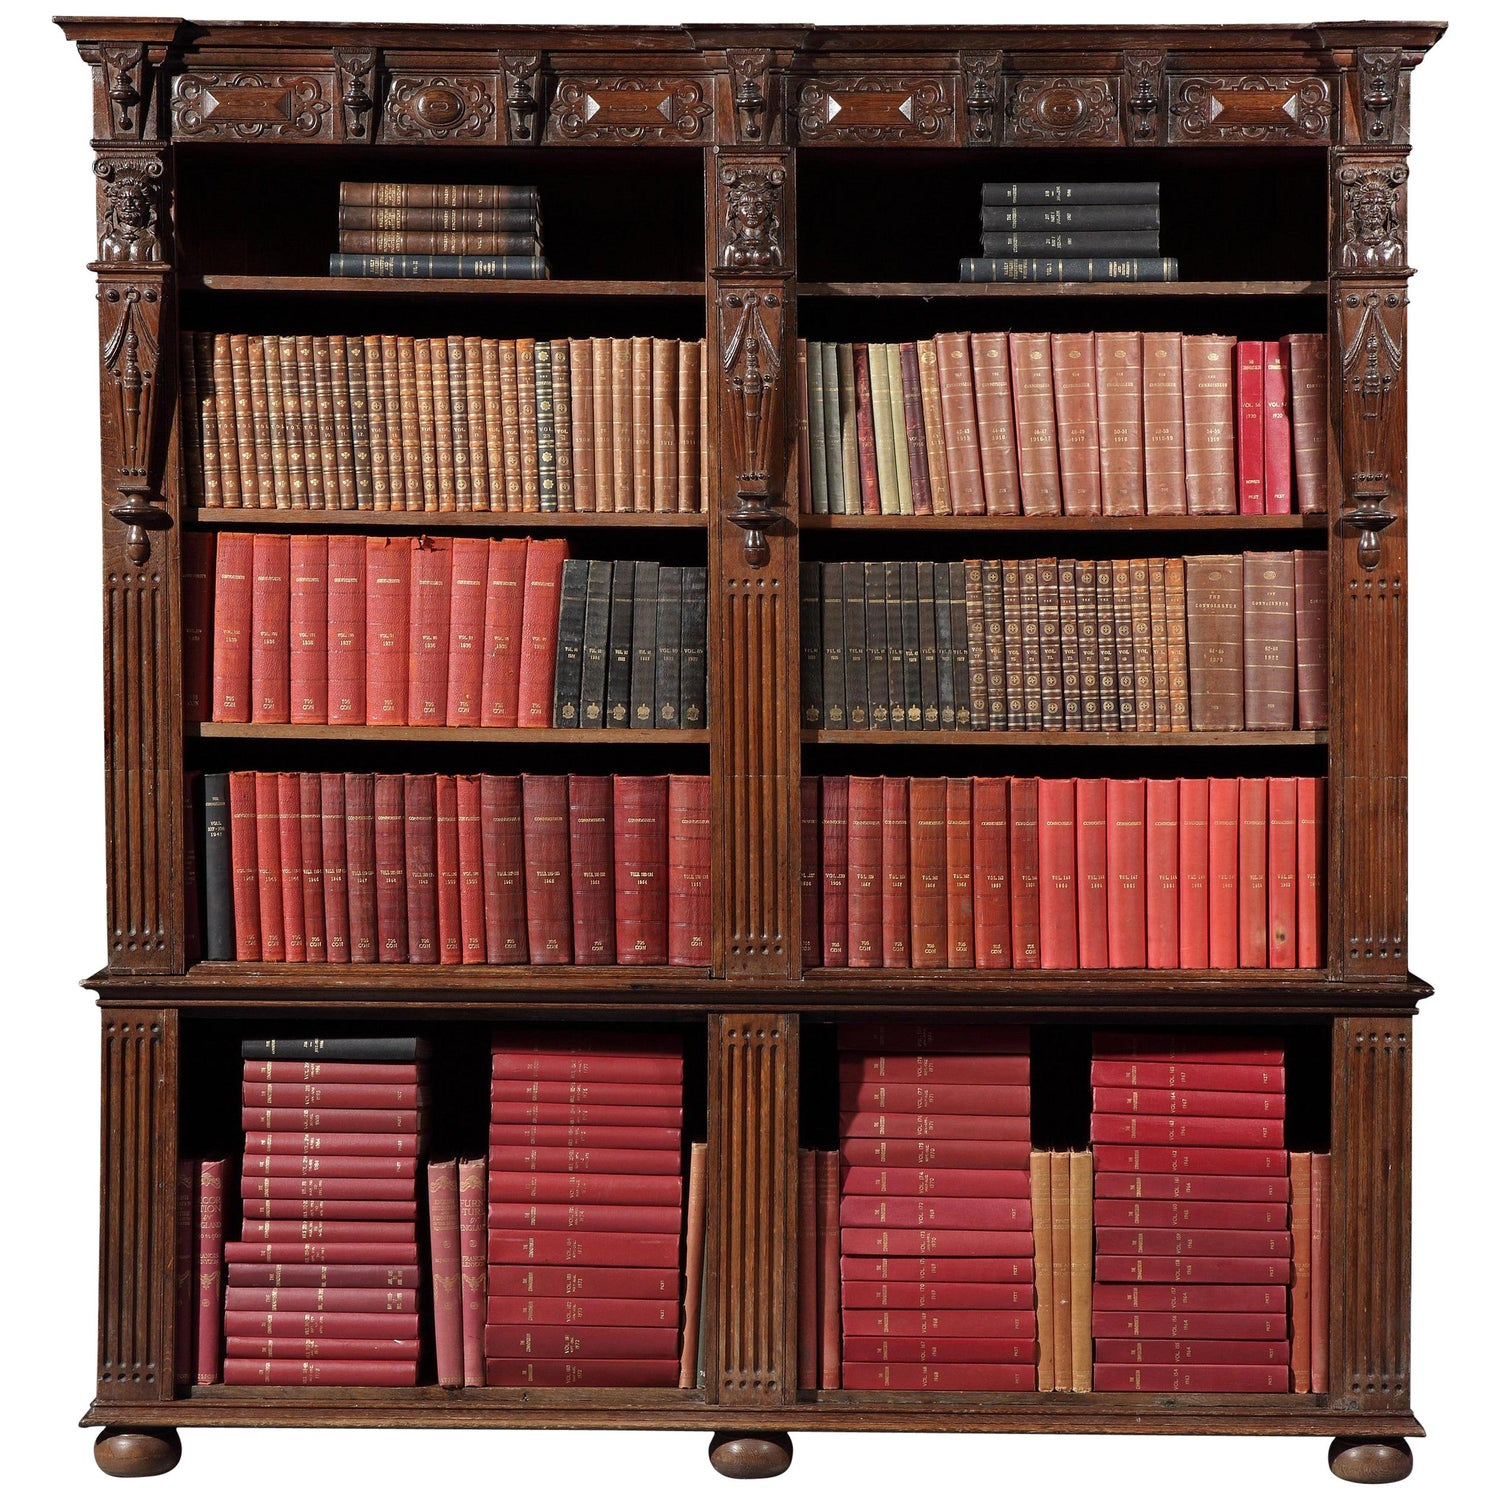 Connoisseur, Complete 218 Volumes in 84 Books Bound in Leather and Cloth